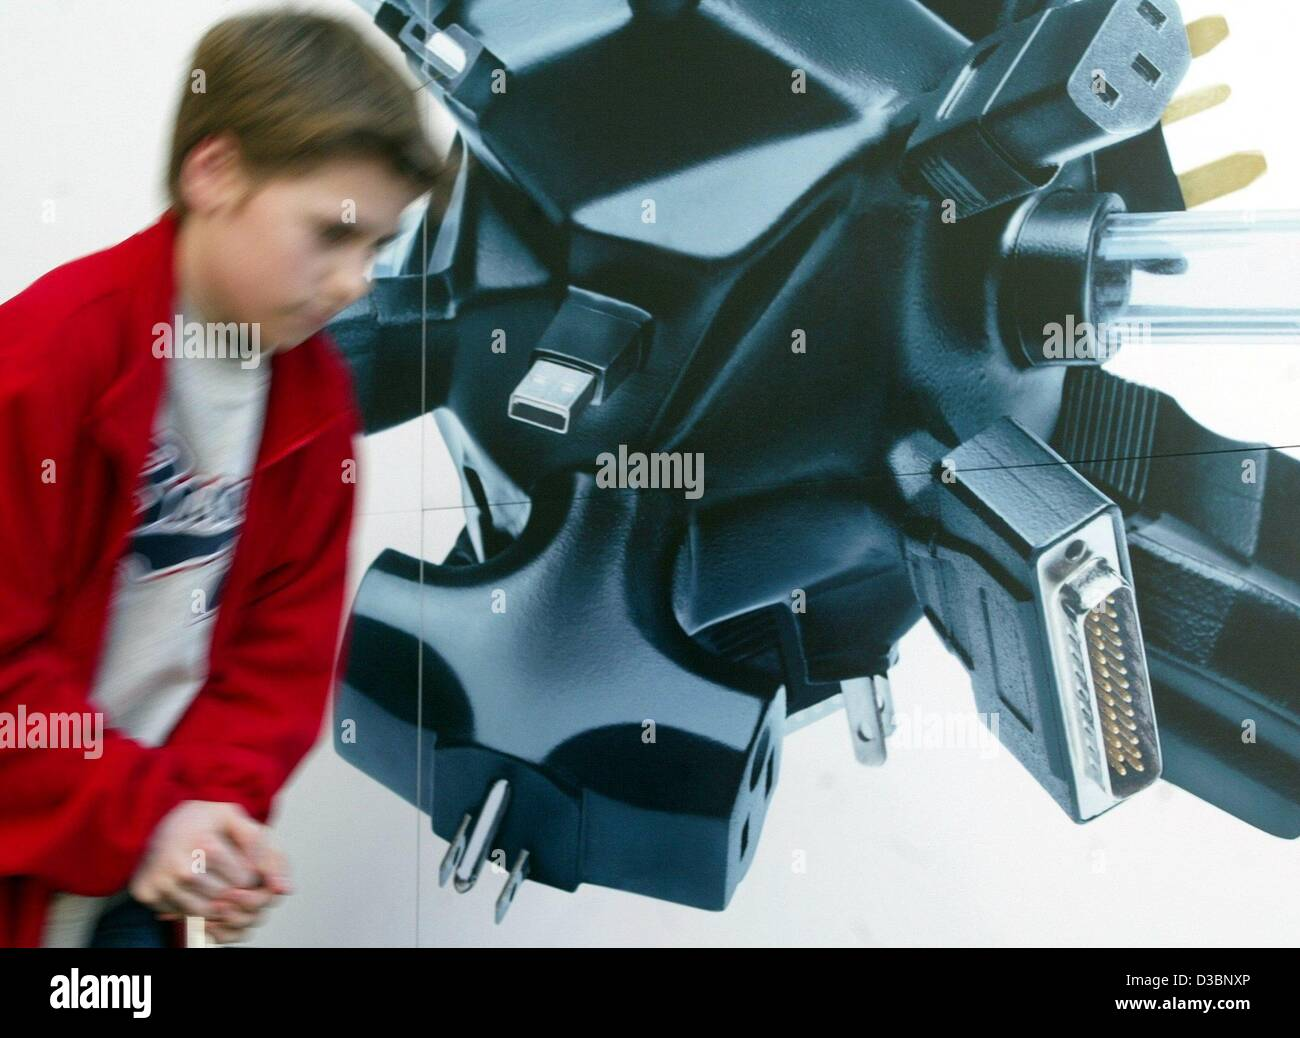 (dpa) - A boy walks past a poster showing oversize computer plugs at the world's largest computer trade fair - Stock Image